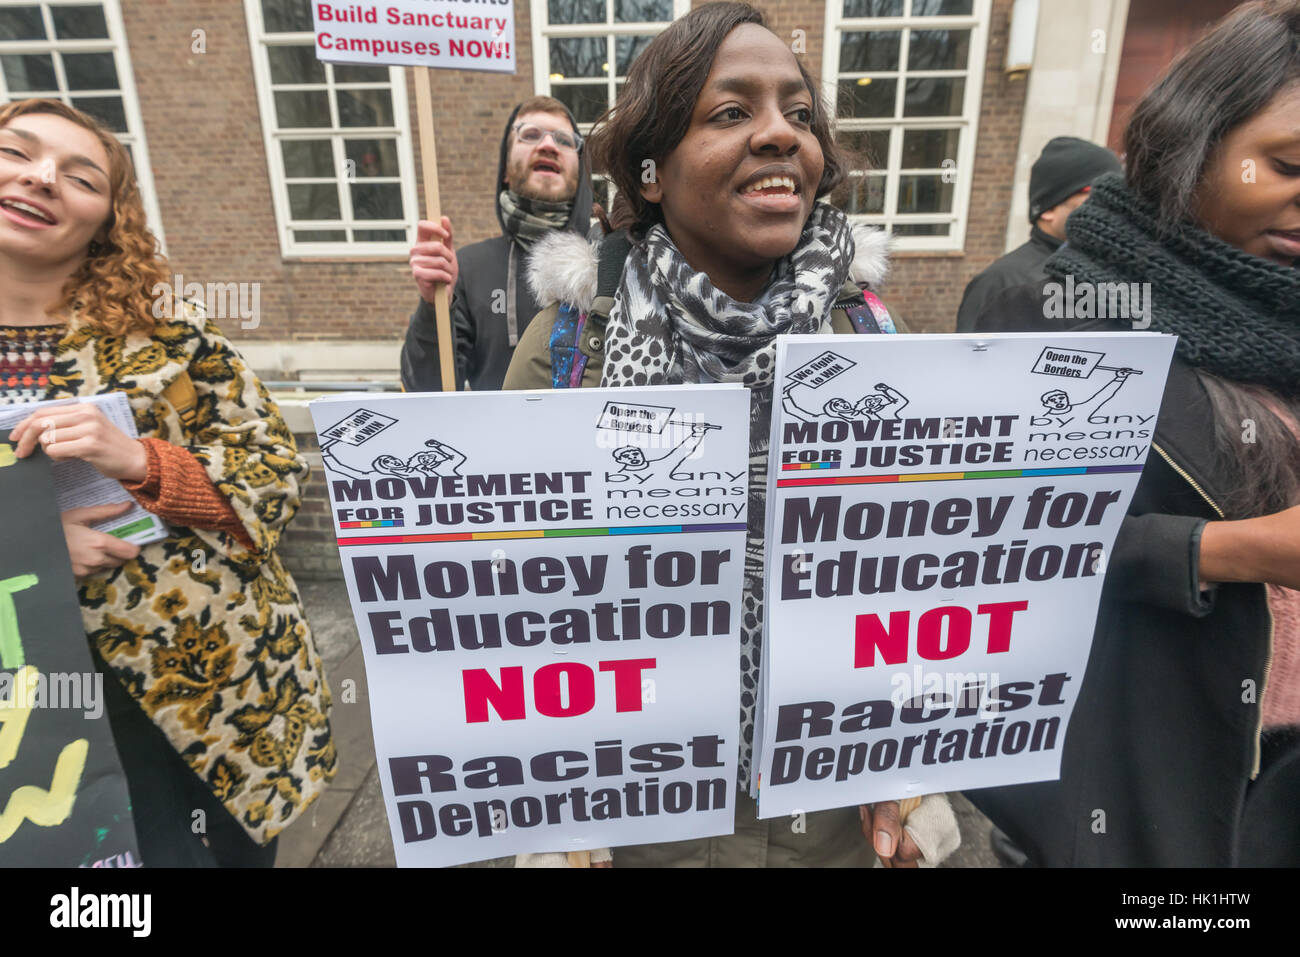 London, UK. 25th January 2017. A woman holds two placards as Movement for Justice and NUS London protest outside Stock Photo